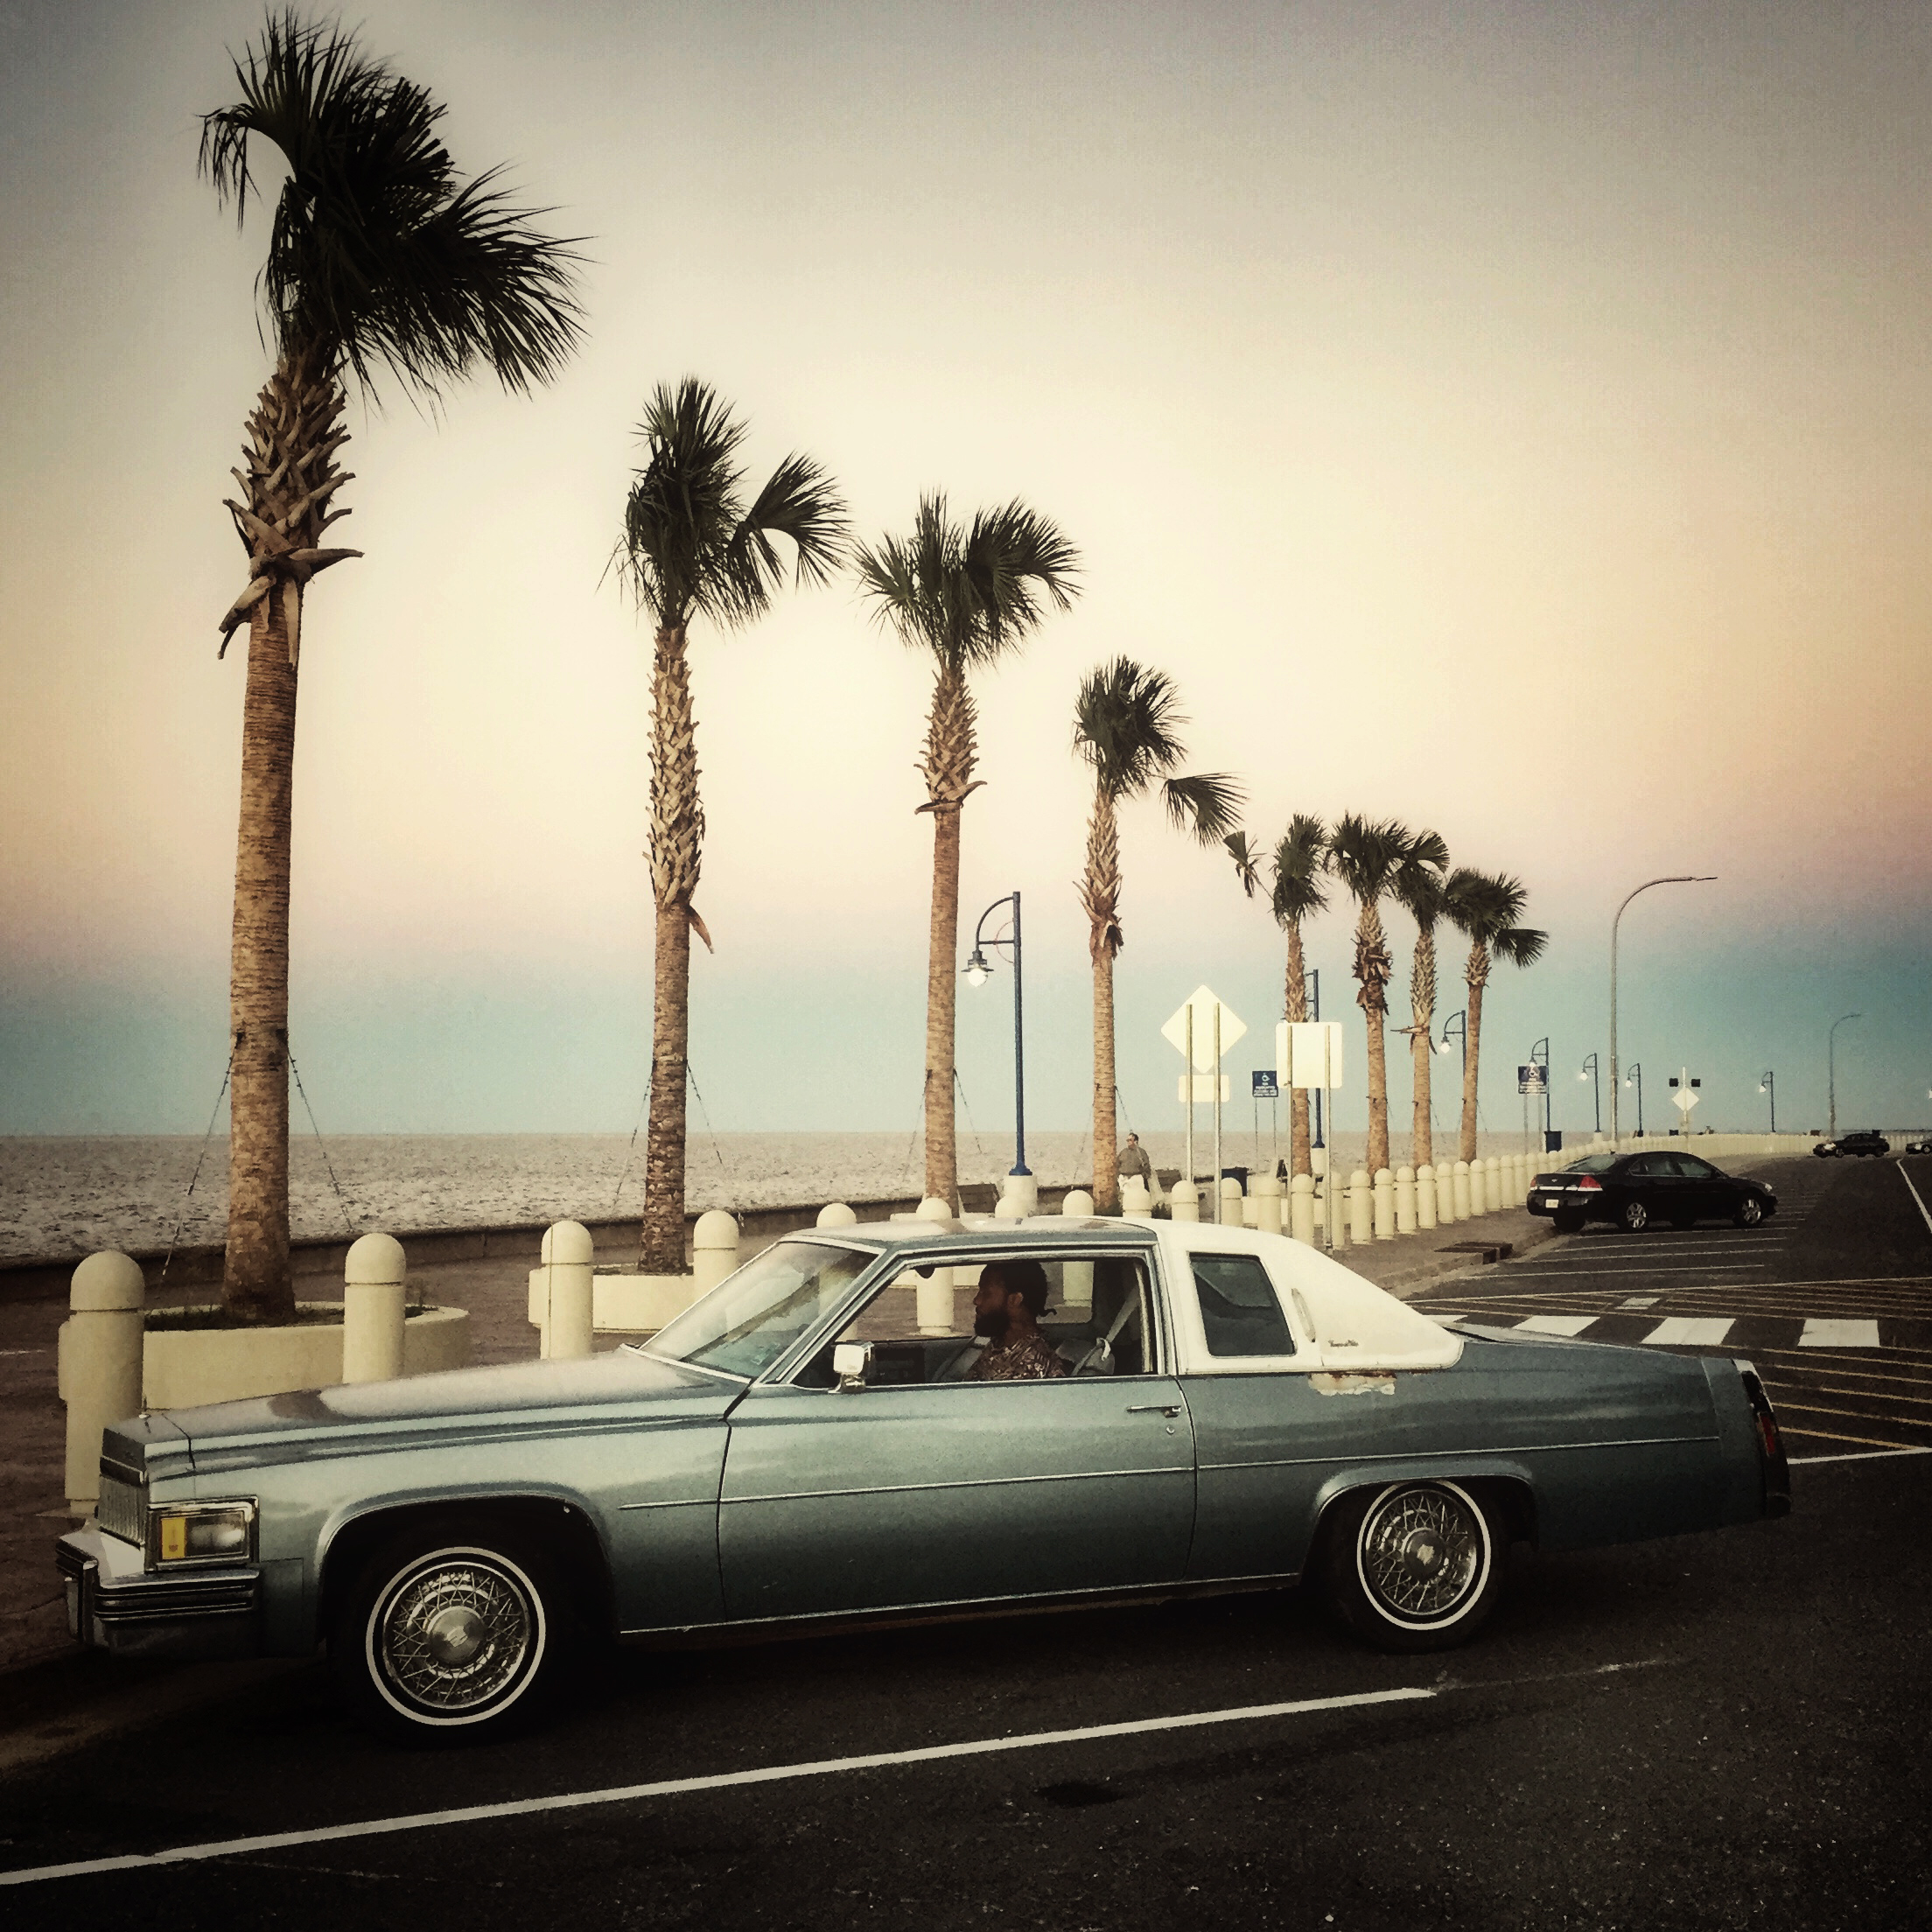 """Jones sits by Lake Shore Drive in New Orleans, Louisiana in a 1978 Cadillac Coupe Deville he bought for a restoration project. """"I love working with my hands,  he says."""